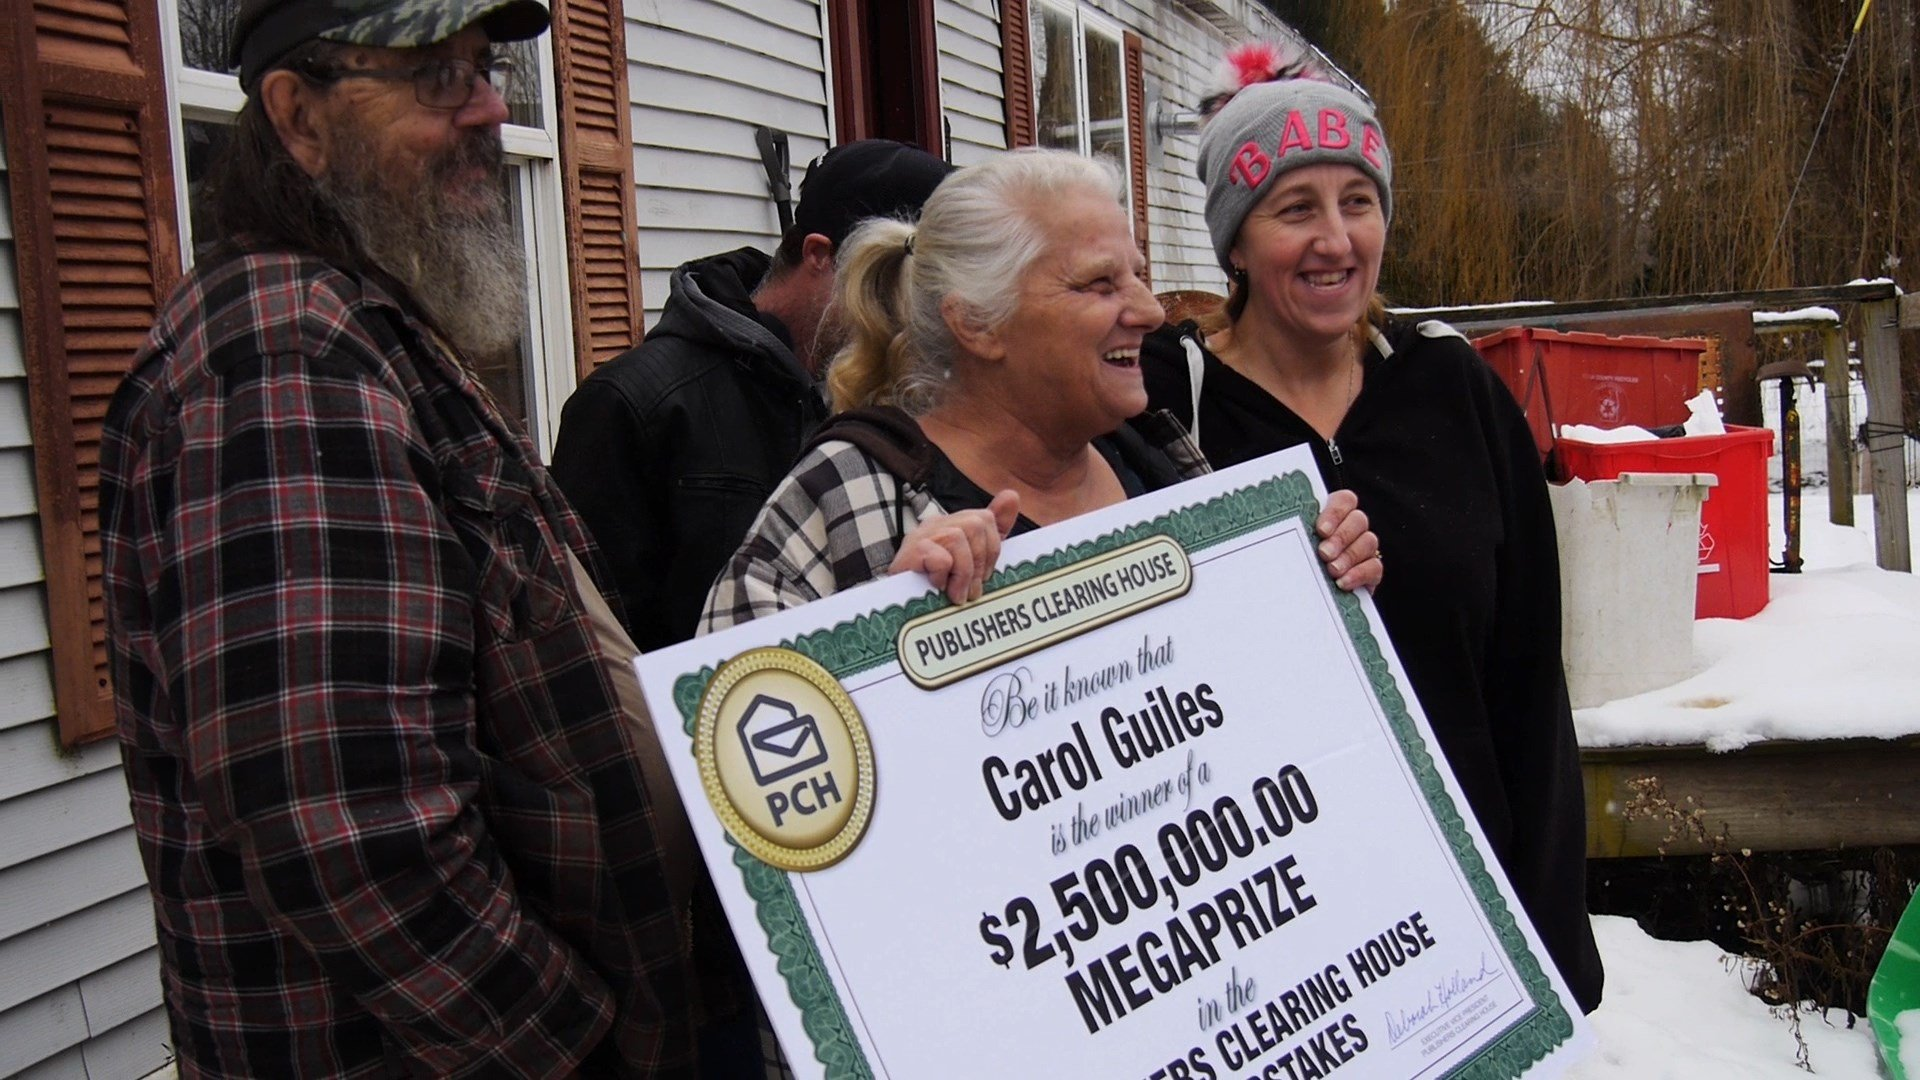 Owego Woman Wins $2 5 Million Publisher's Clearing House Prize - FOX